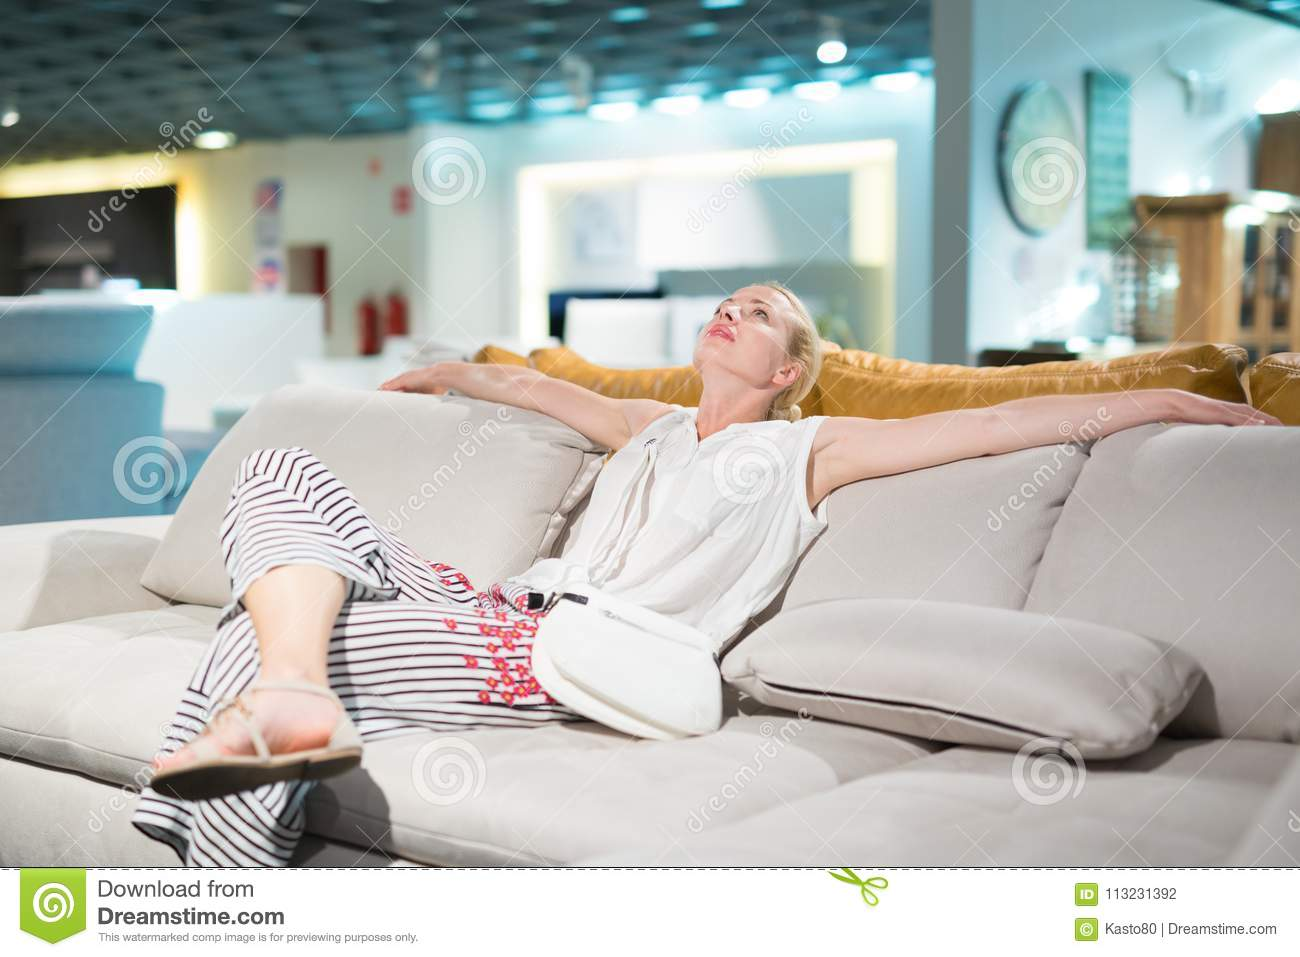 https www dreamstime com woman shopping new sofa furniture store caucasian home decor lady sitting relaxing imagining her architectural image113231392